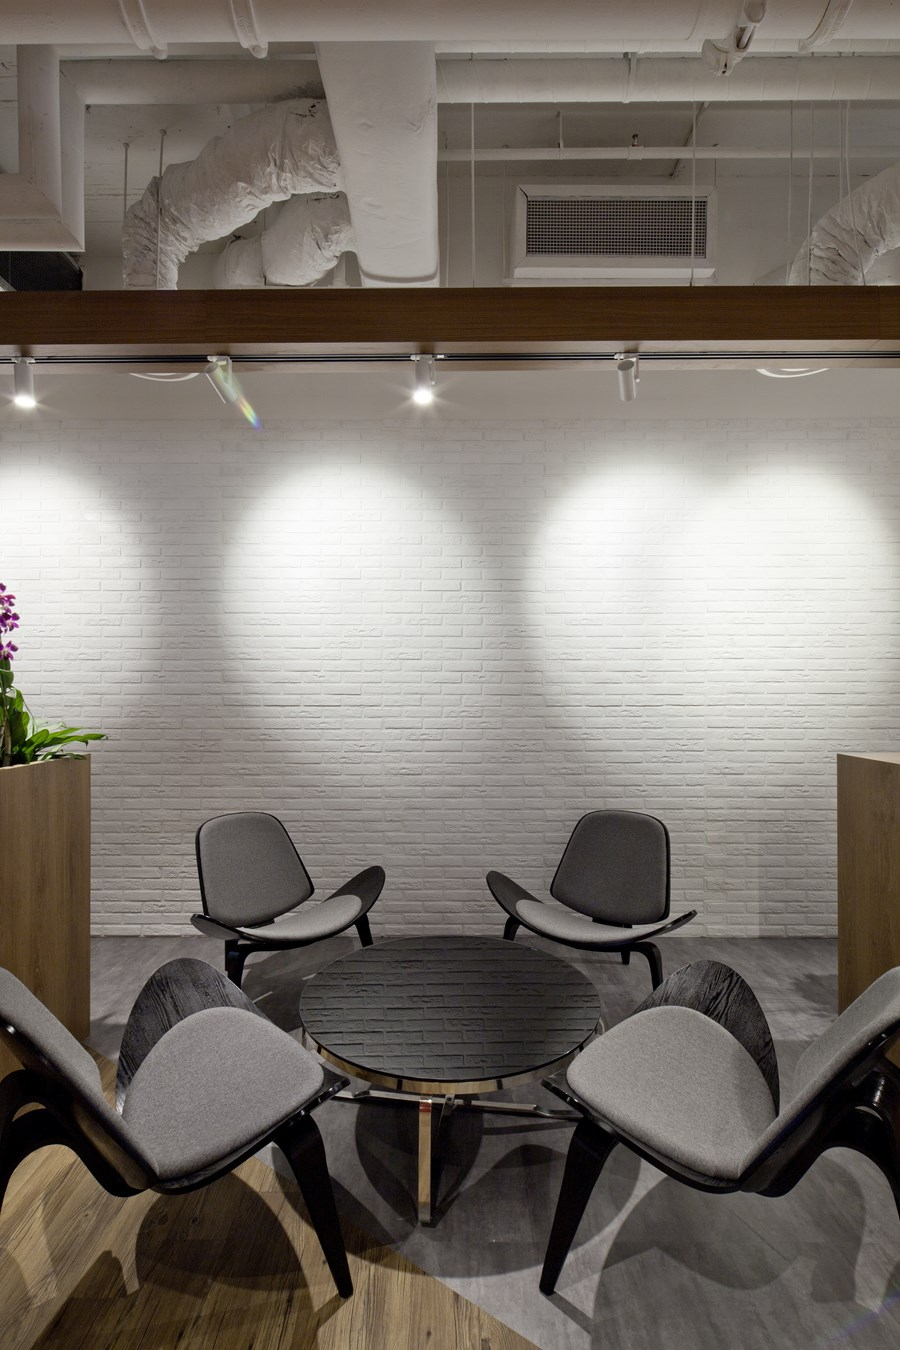 Booking.com's Singapore office by ONG&ONG group 27